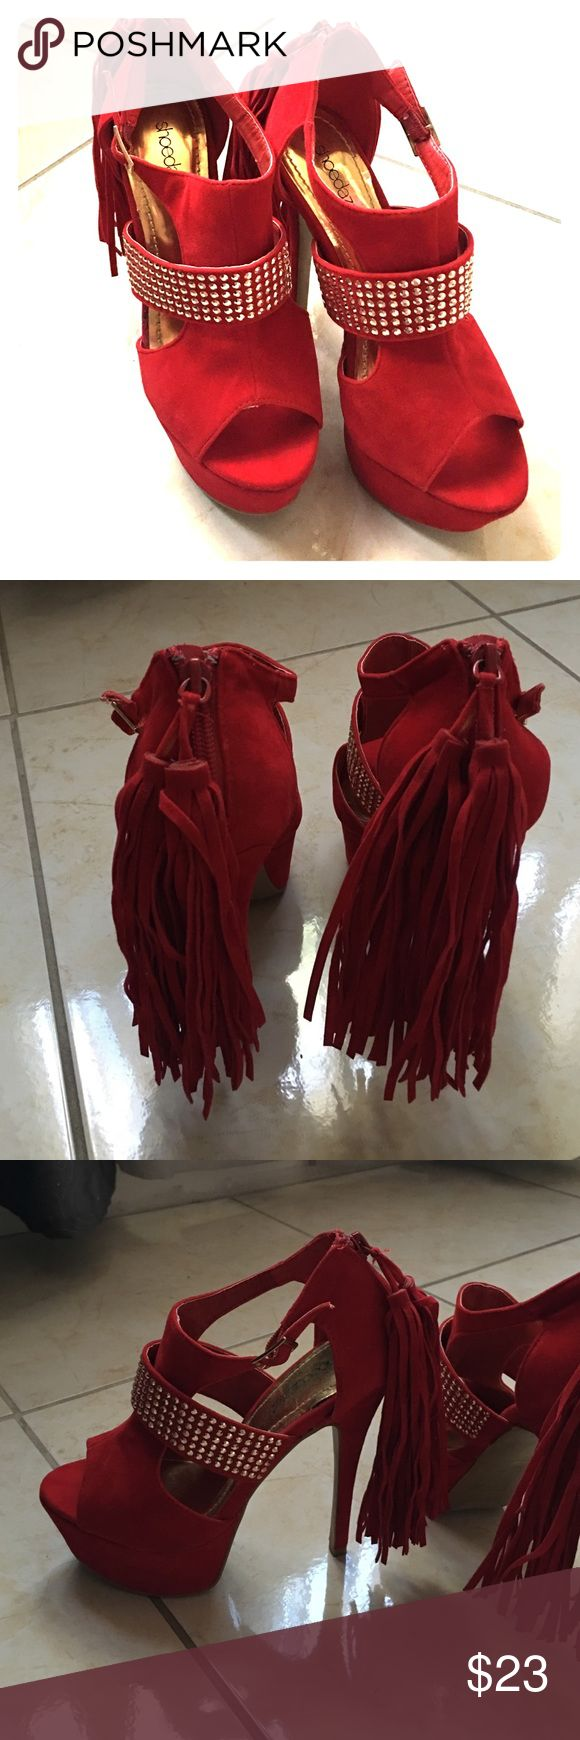 Red platform heels These are new never been worn red platform heels. They have a sparkly band in the center with tassels on the back. Shoe Dazzle Shoes Platforms